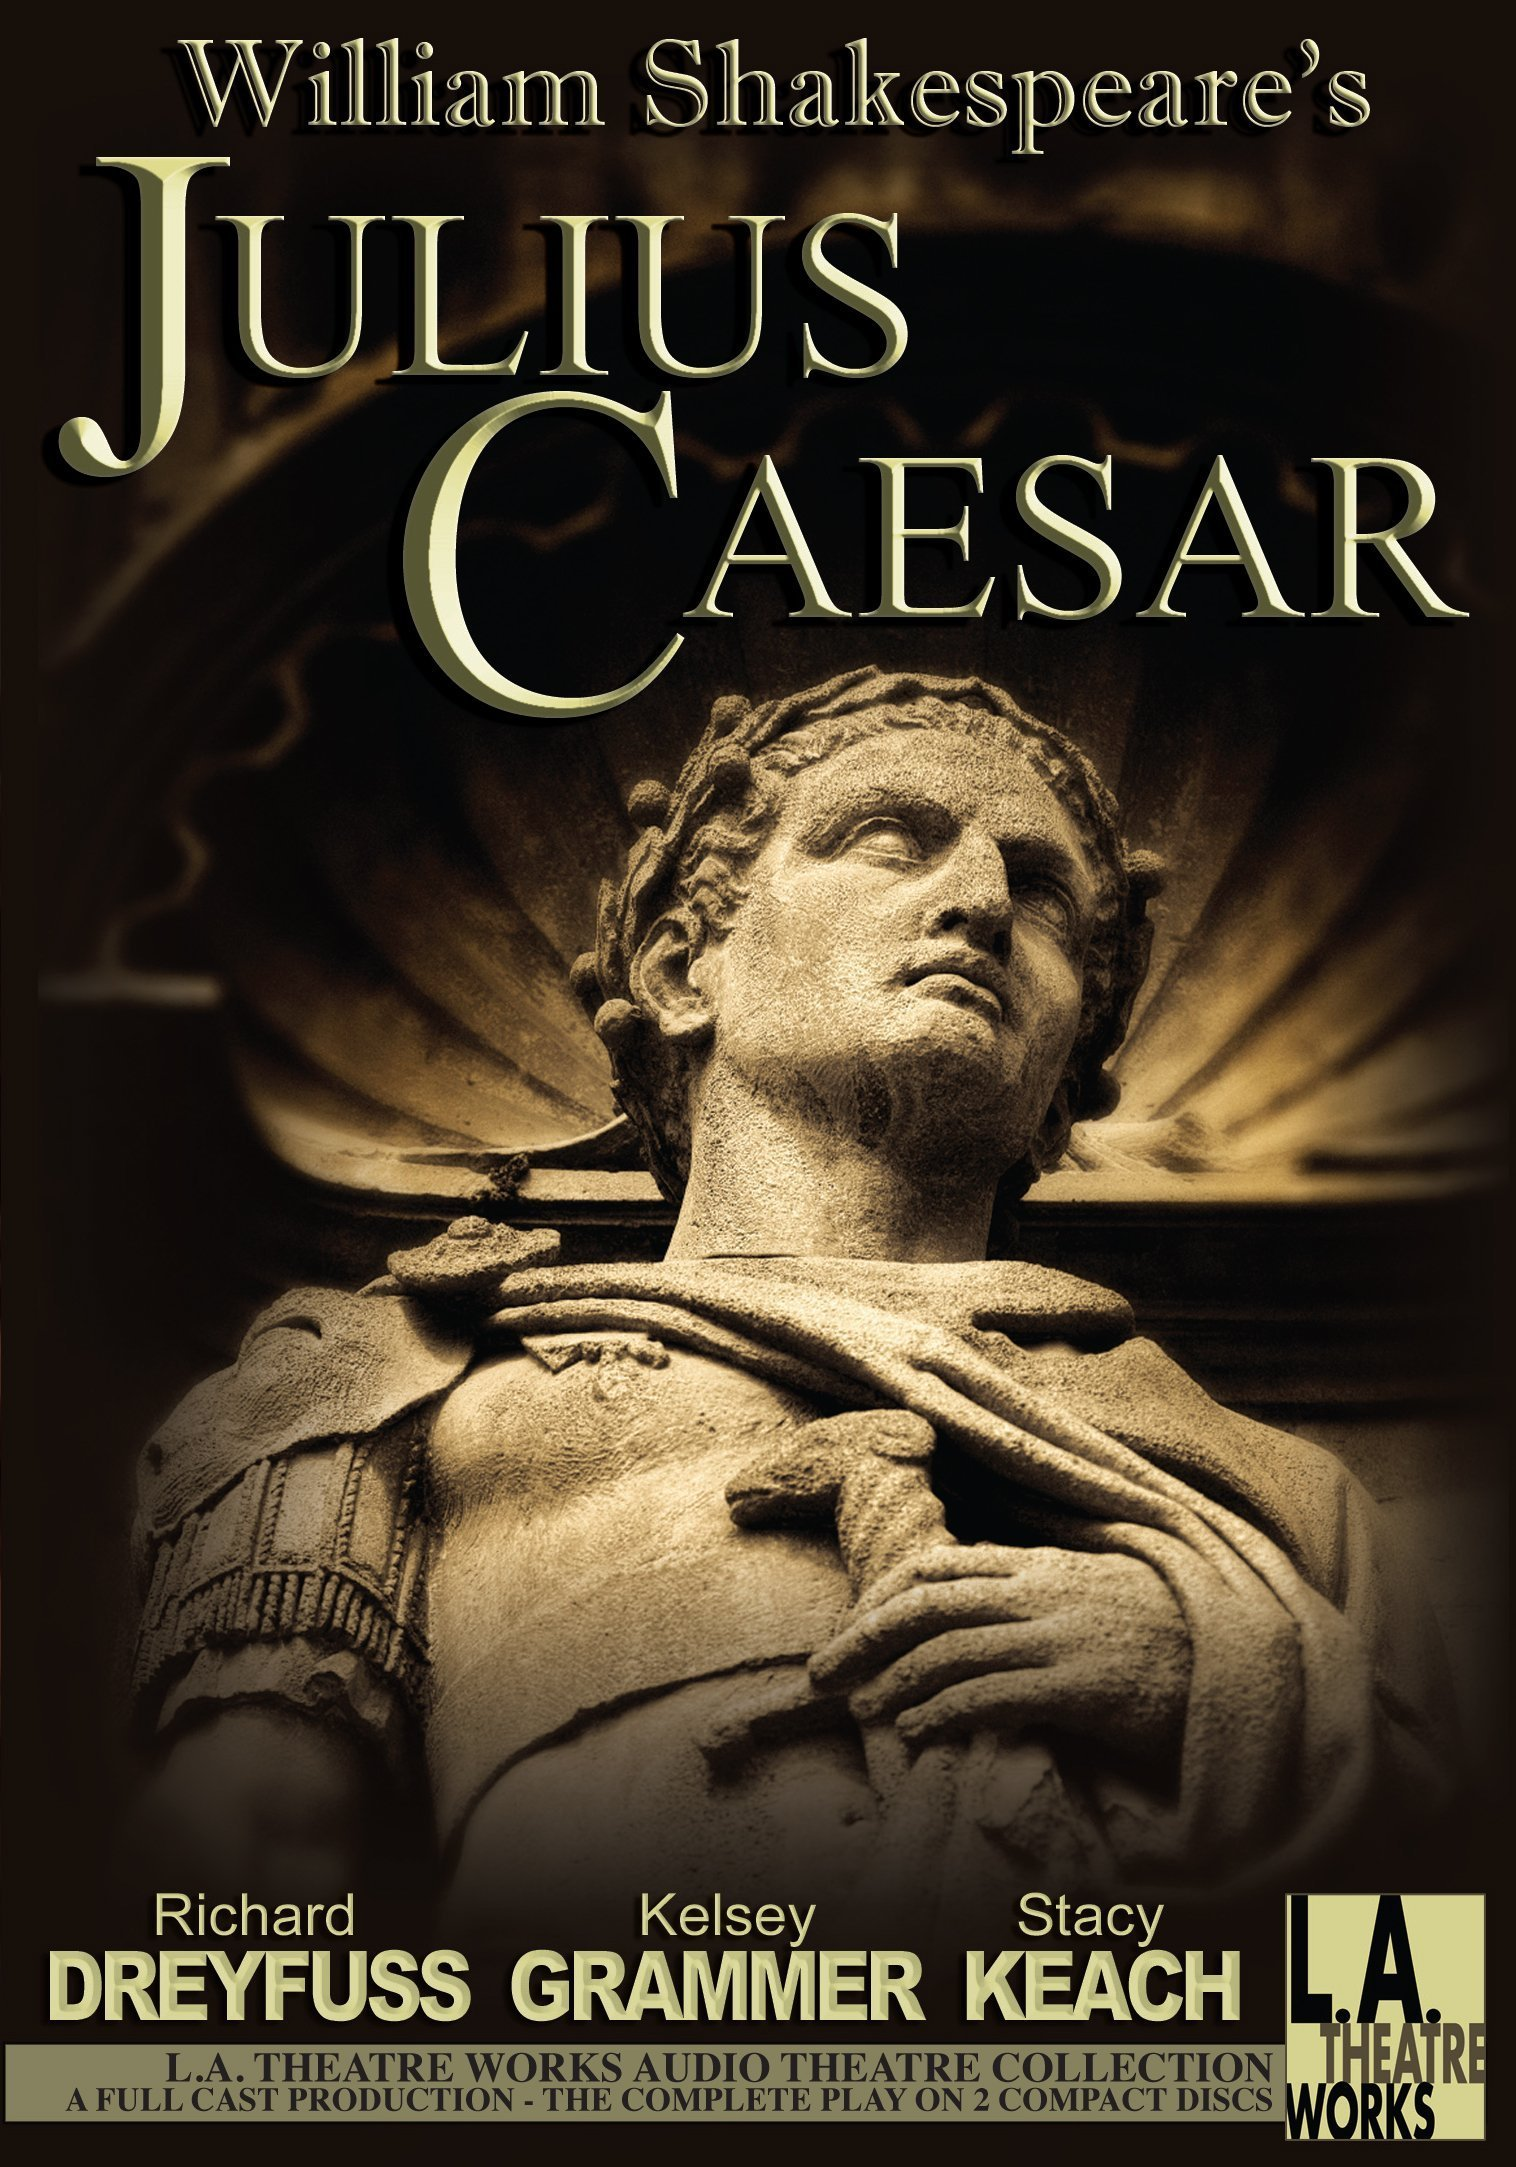 an overview of the character caesar in william shakespeares julius caesar Analysis and discussion of characters in william shakespeare's julius caesar.